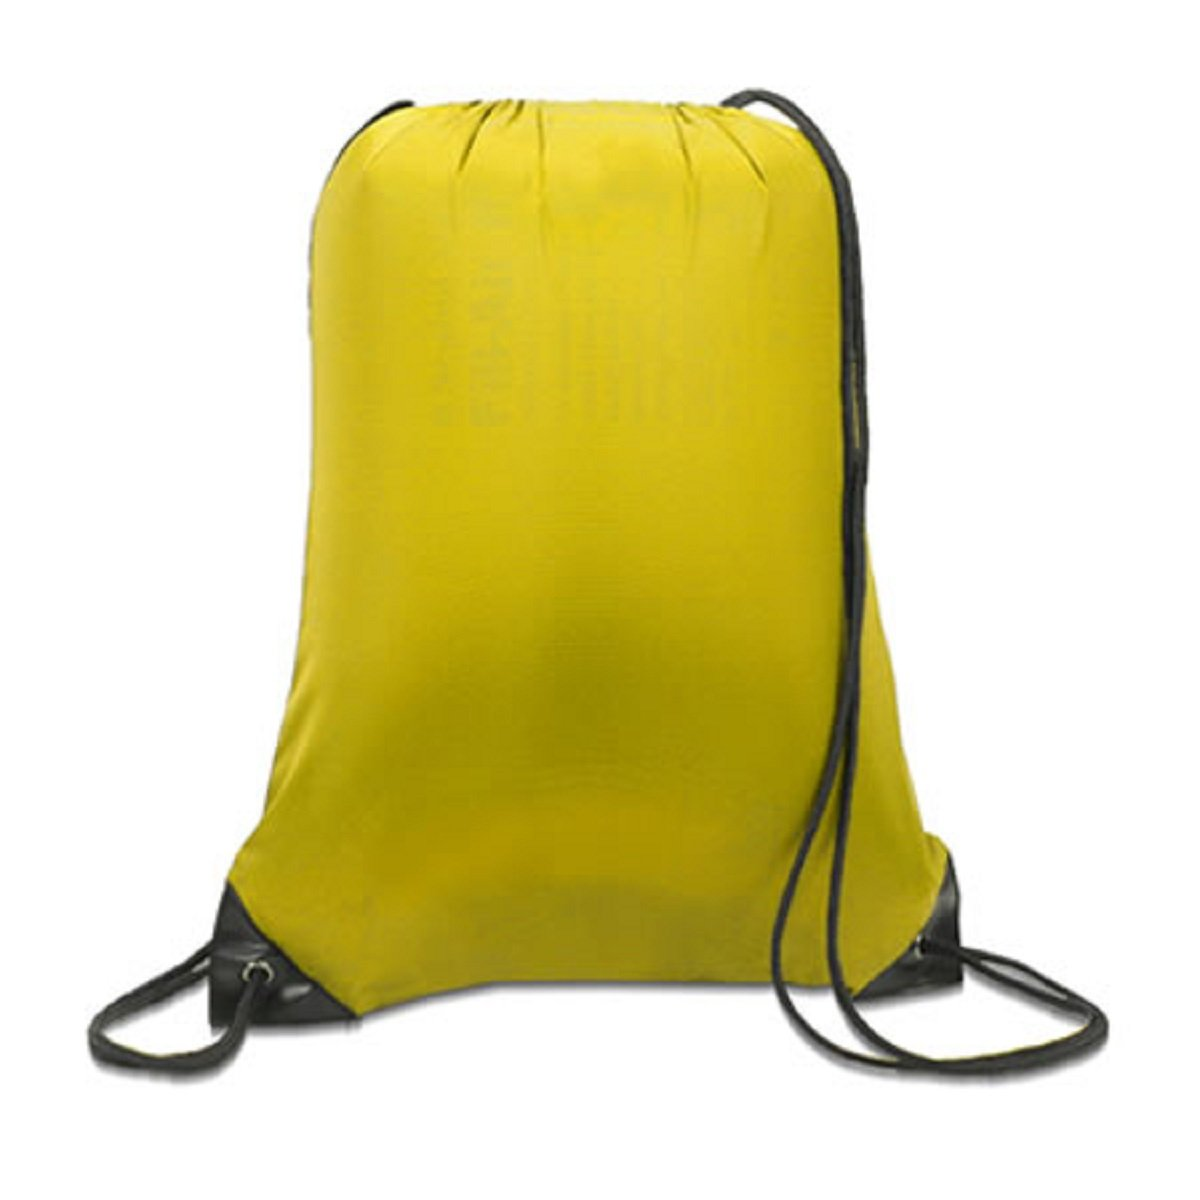 REVIVAL BACKPACK, Yellow, Case of 60